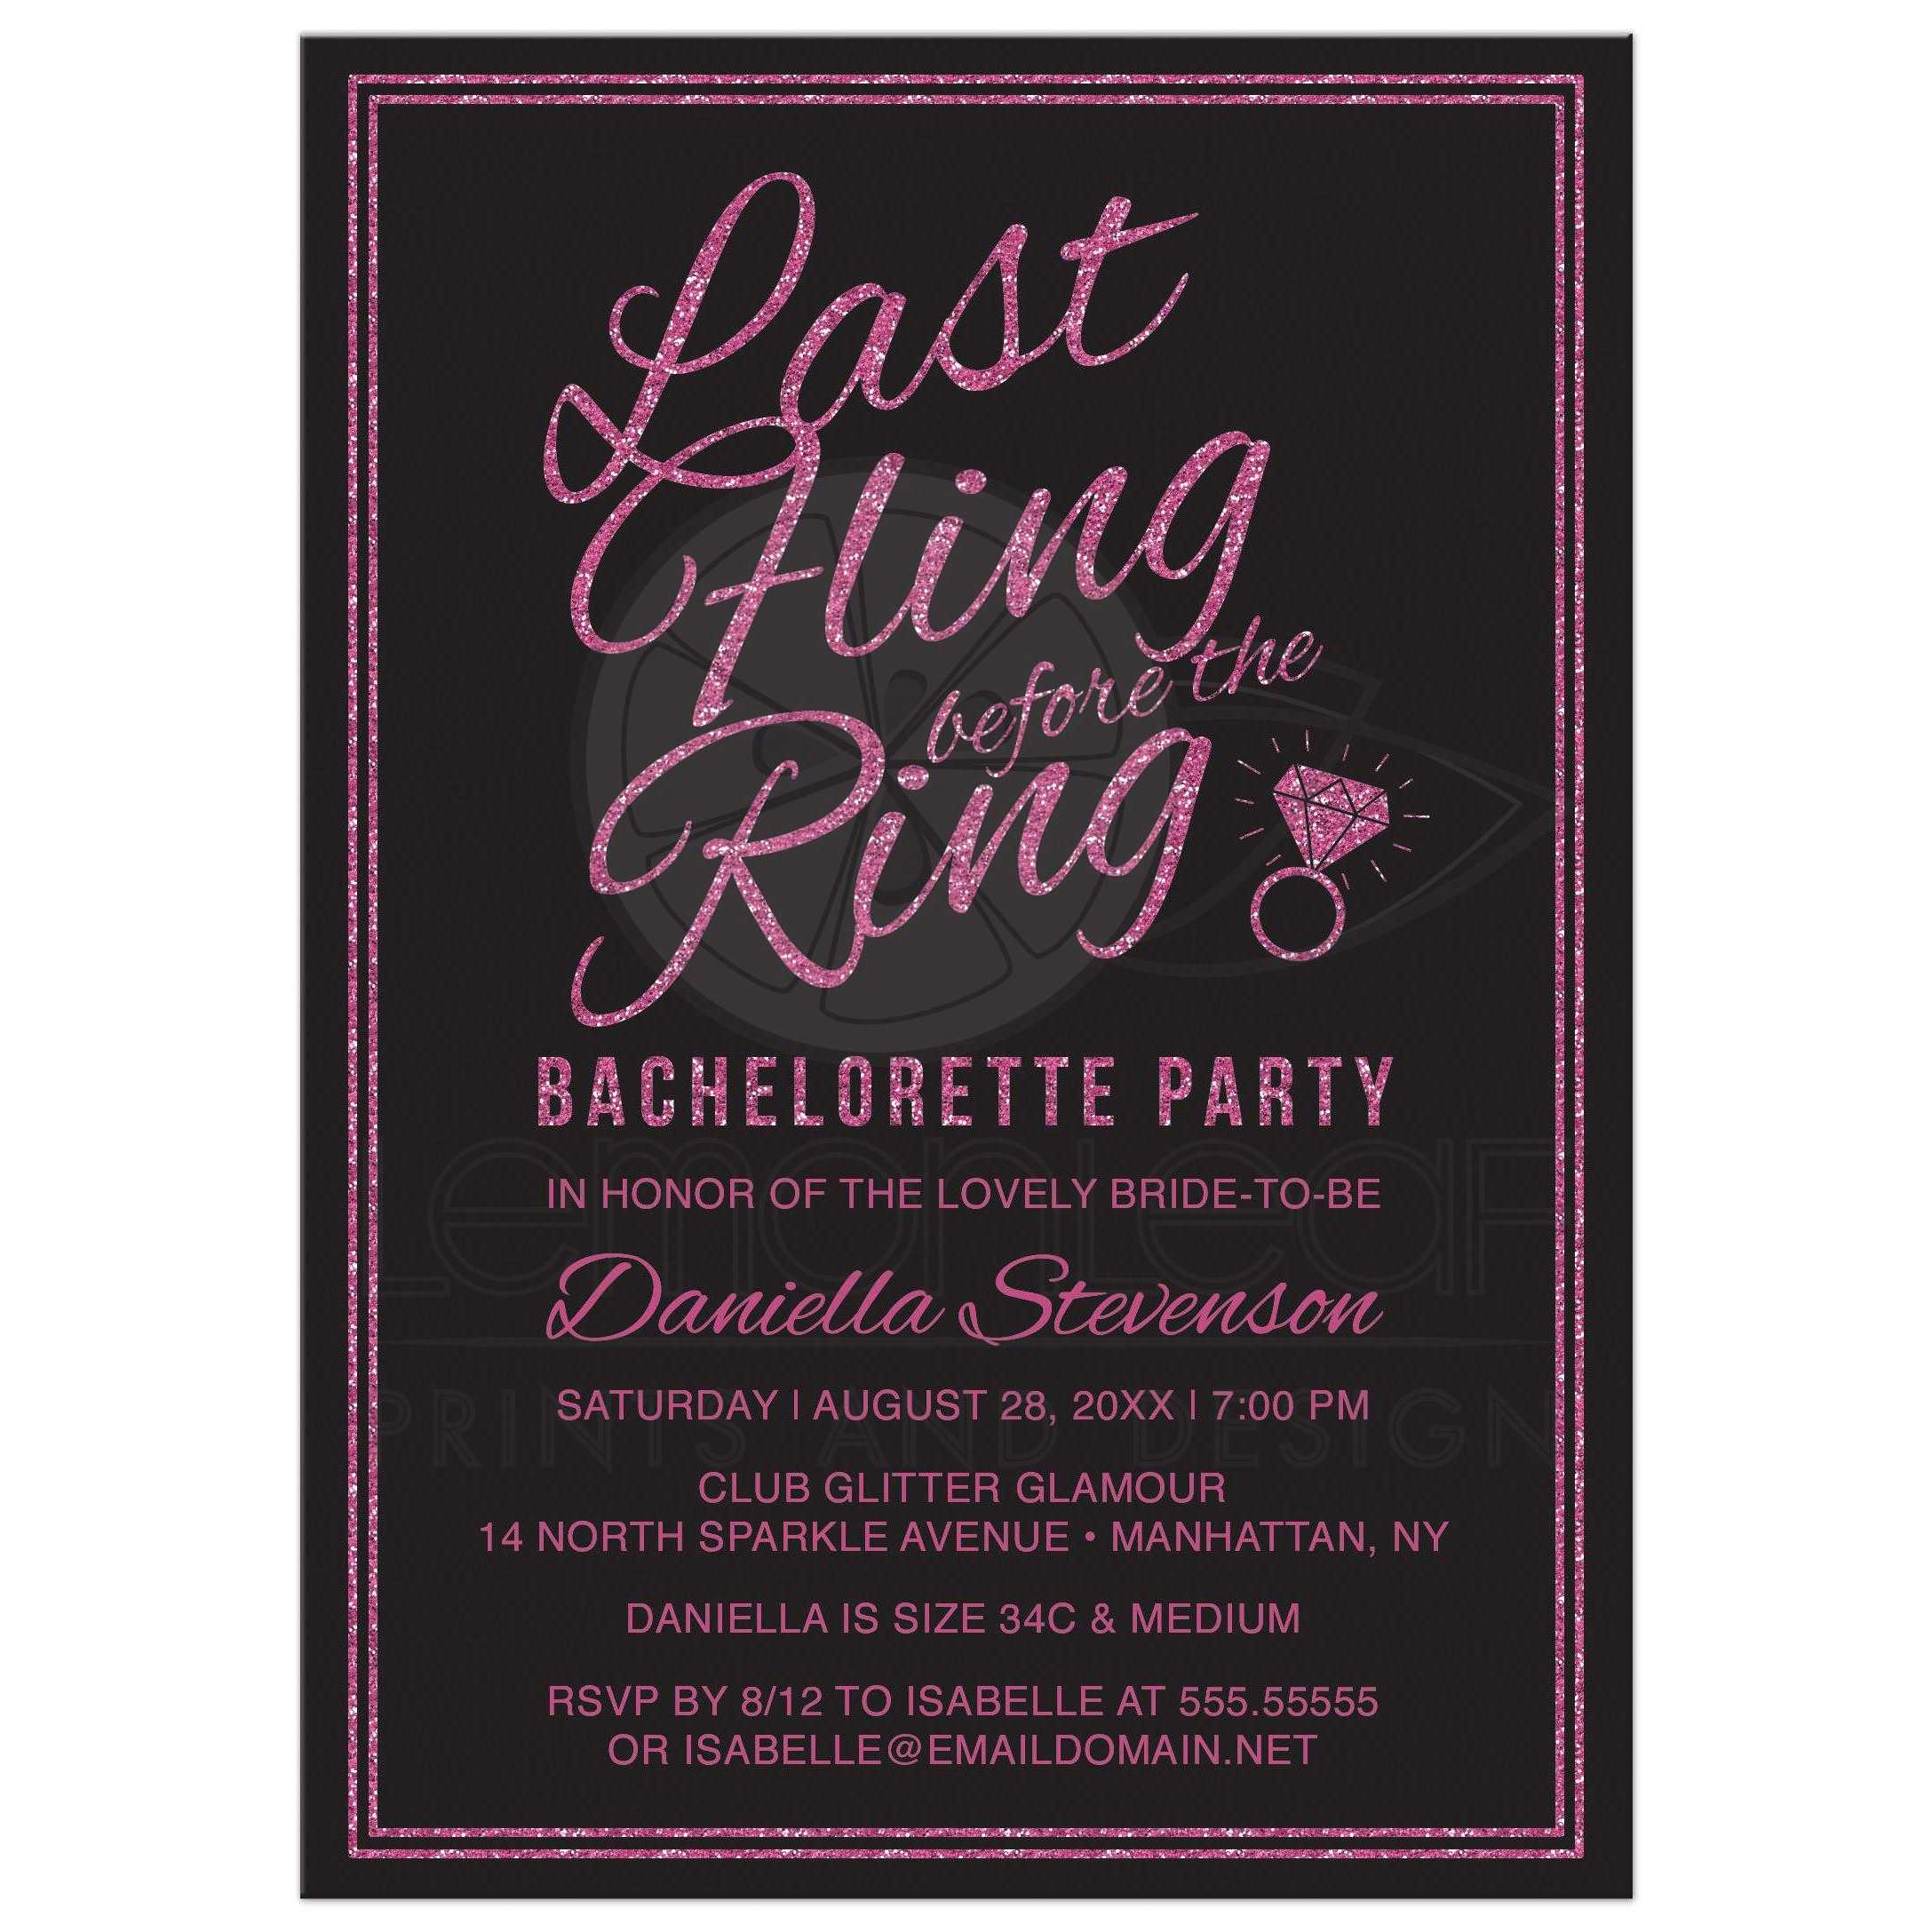 Bachelorette Party Invitations Hot Pink Glitter Look Last Fling – Invitation Bachelorette Party